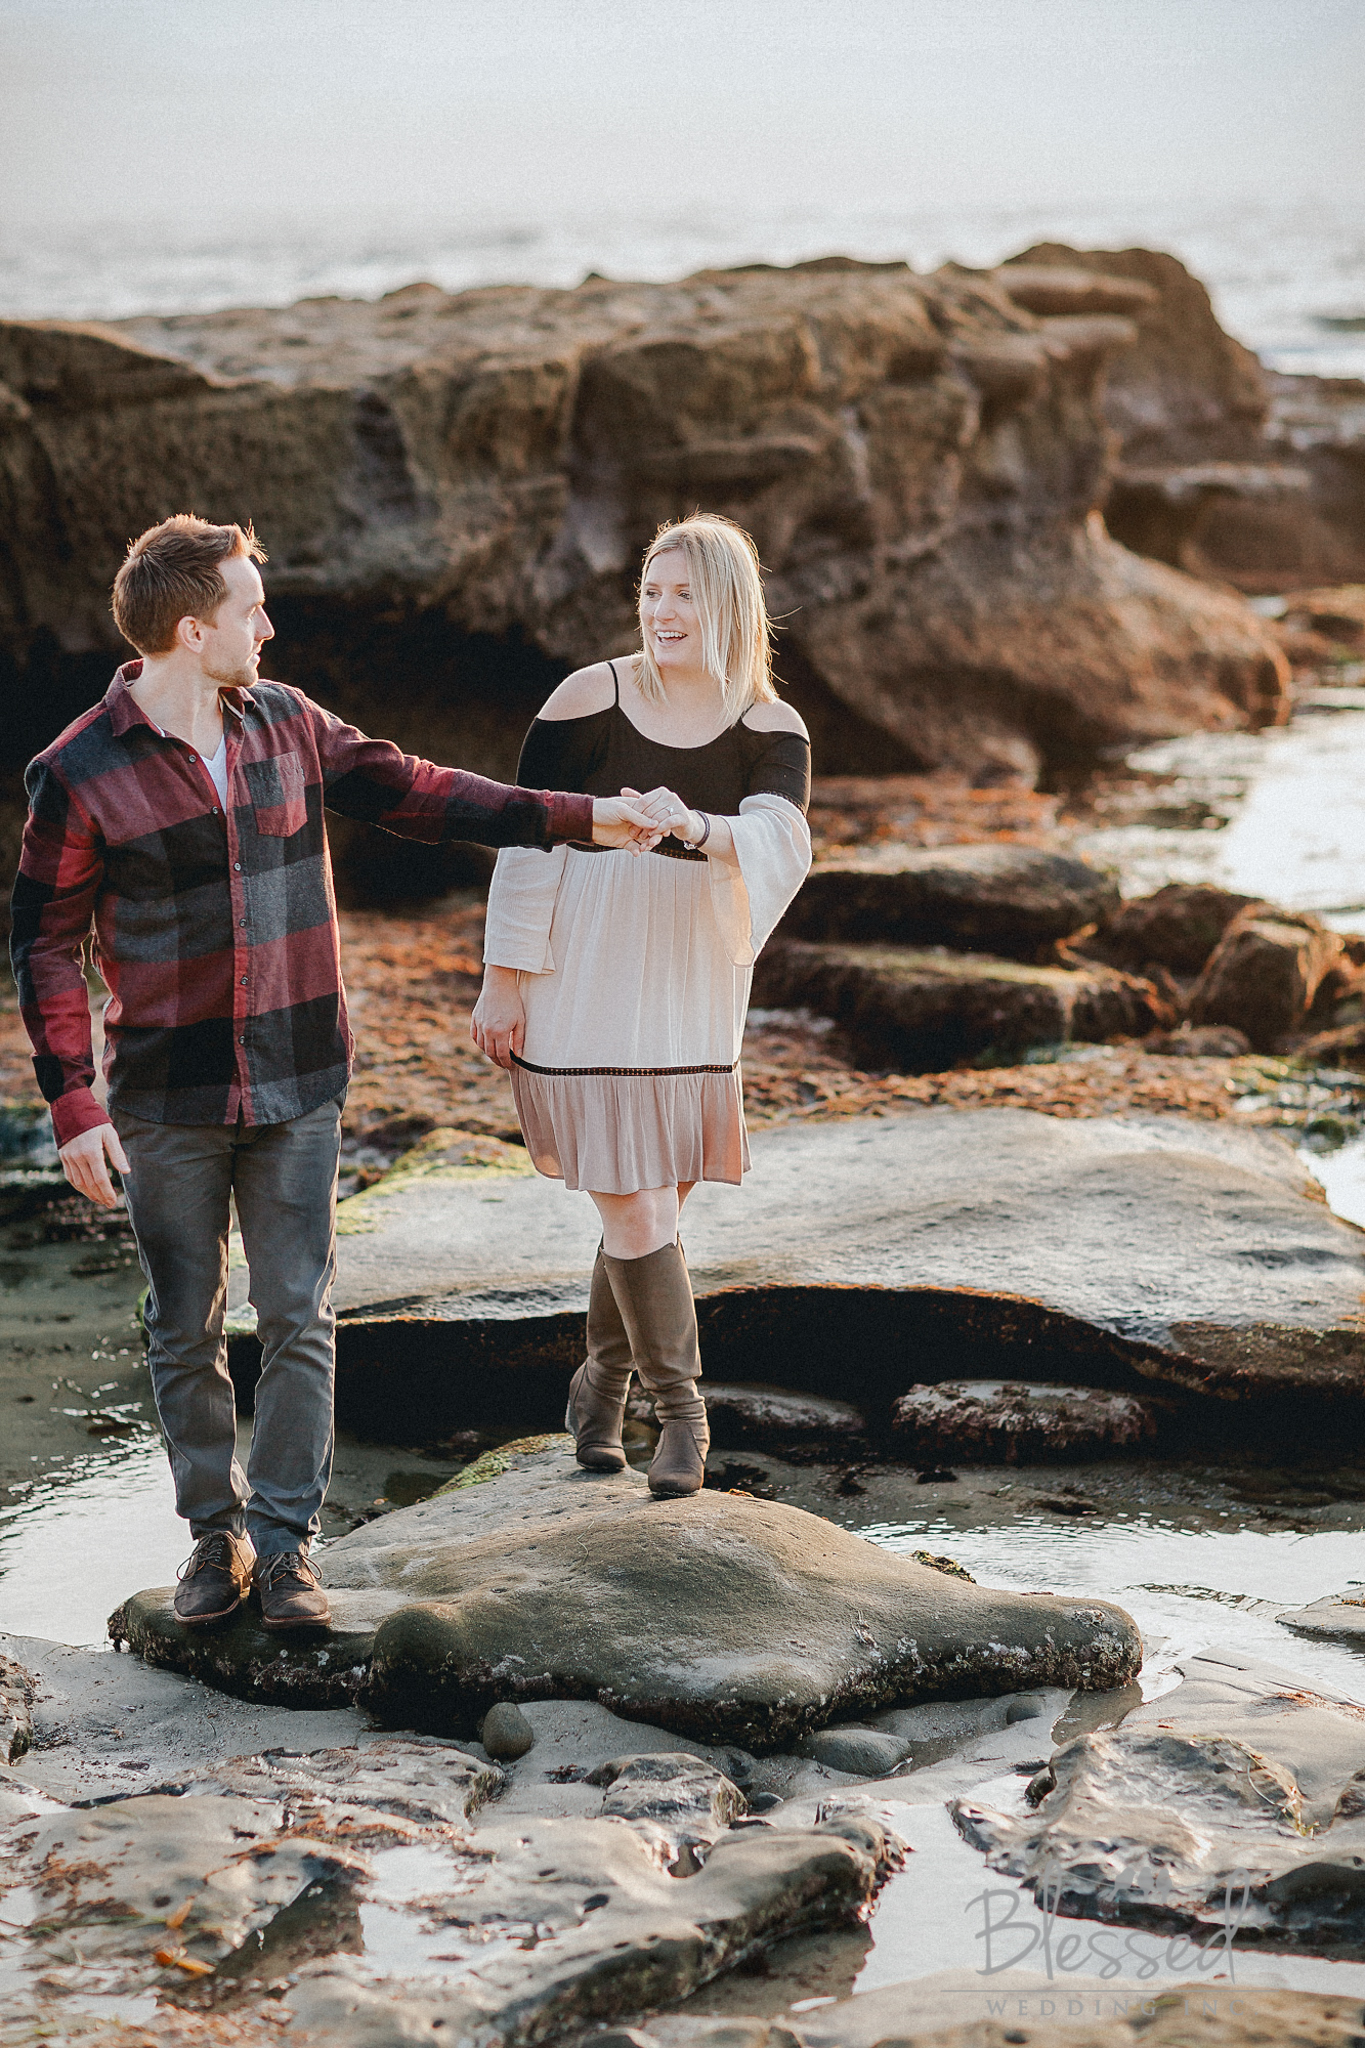 San Diego Engagement Session by San Diego Wedding Photographers Blessed Wedding-15.jpg